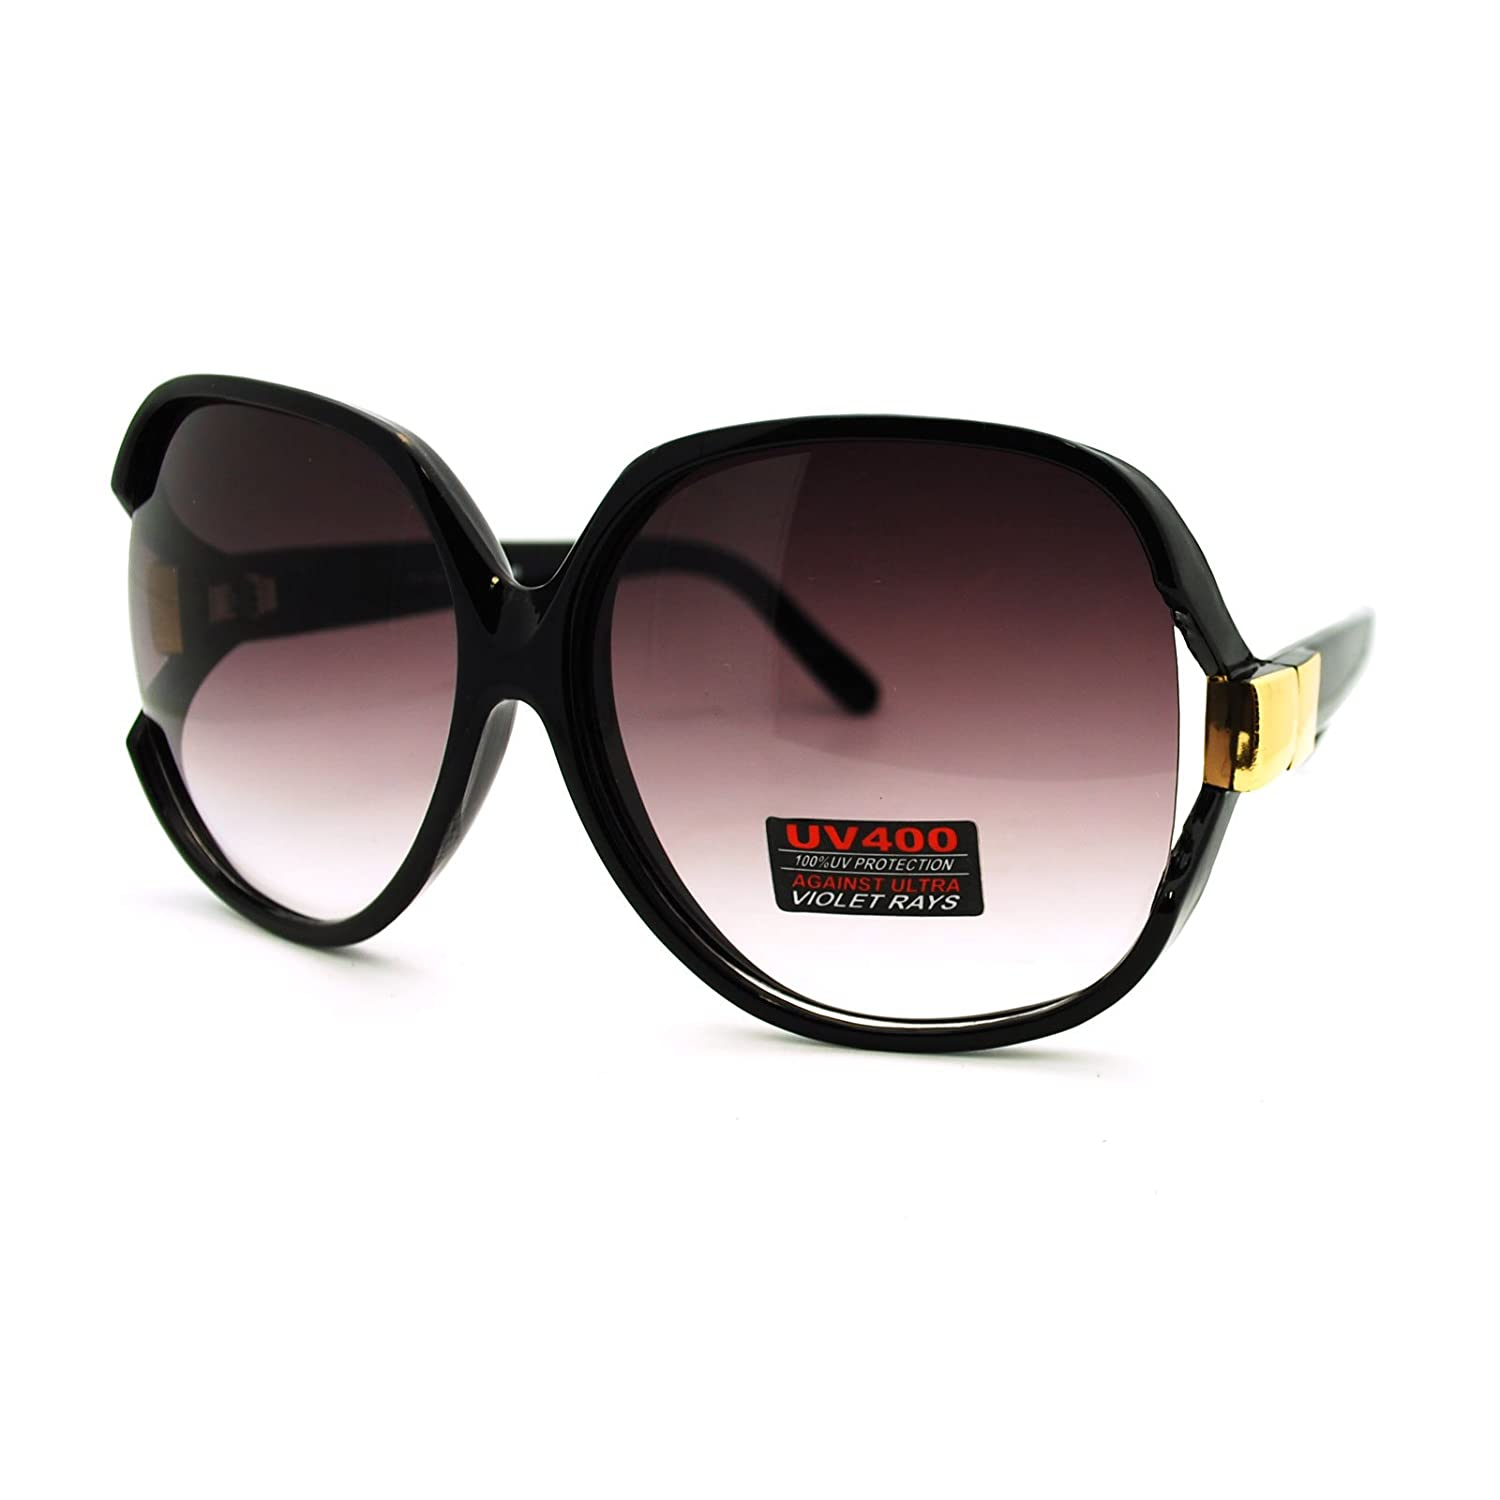 Super Oversized Sunglasses Womens Classic ROUND CELEBRITY PRIVACY Shades NEW